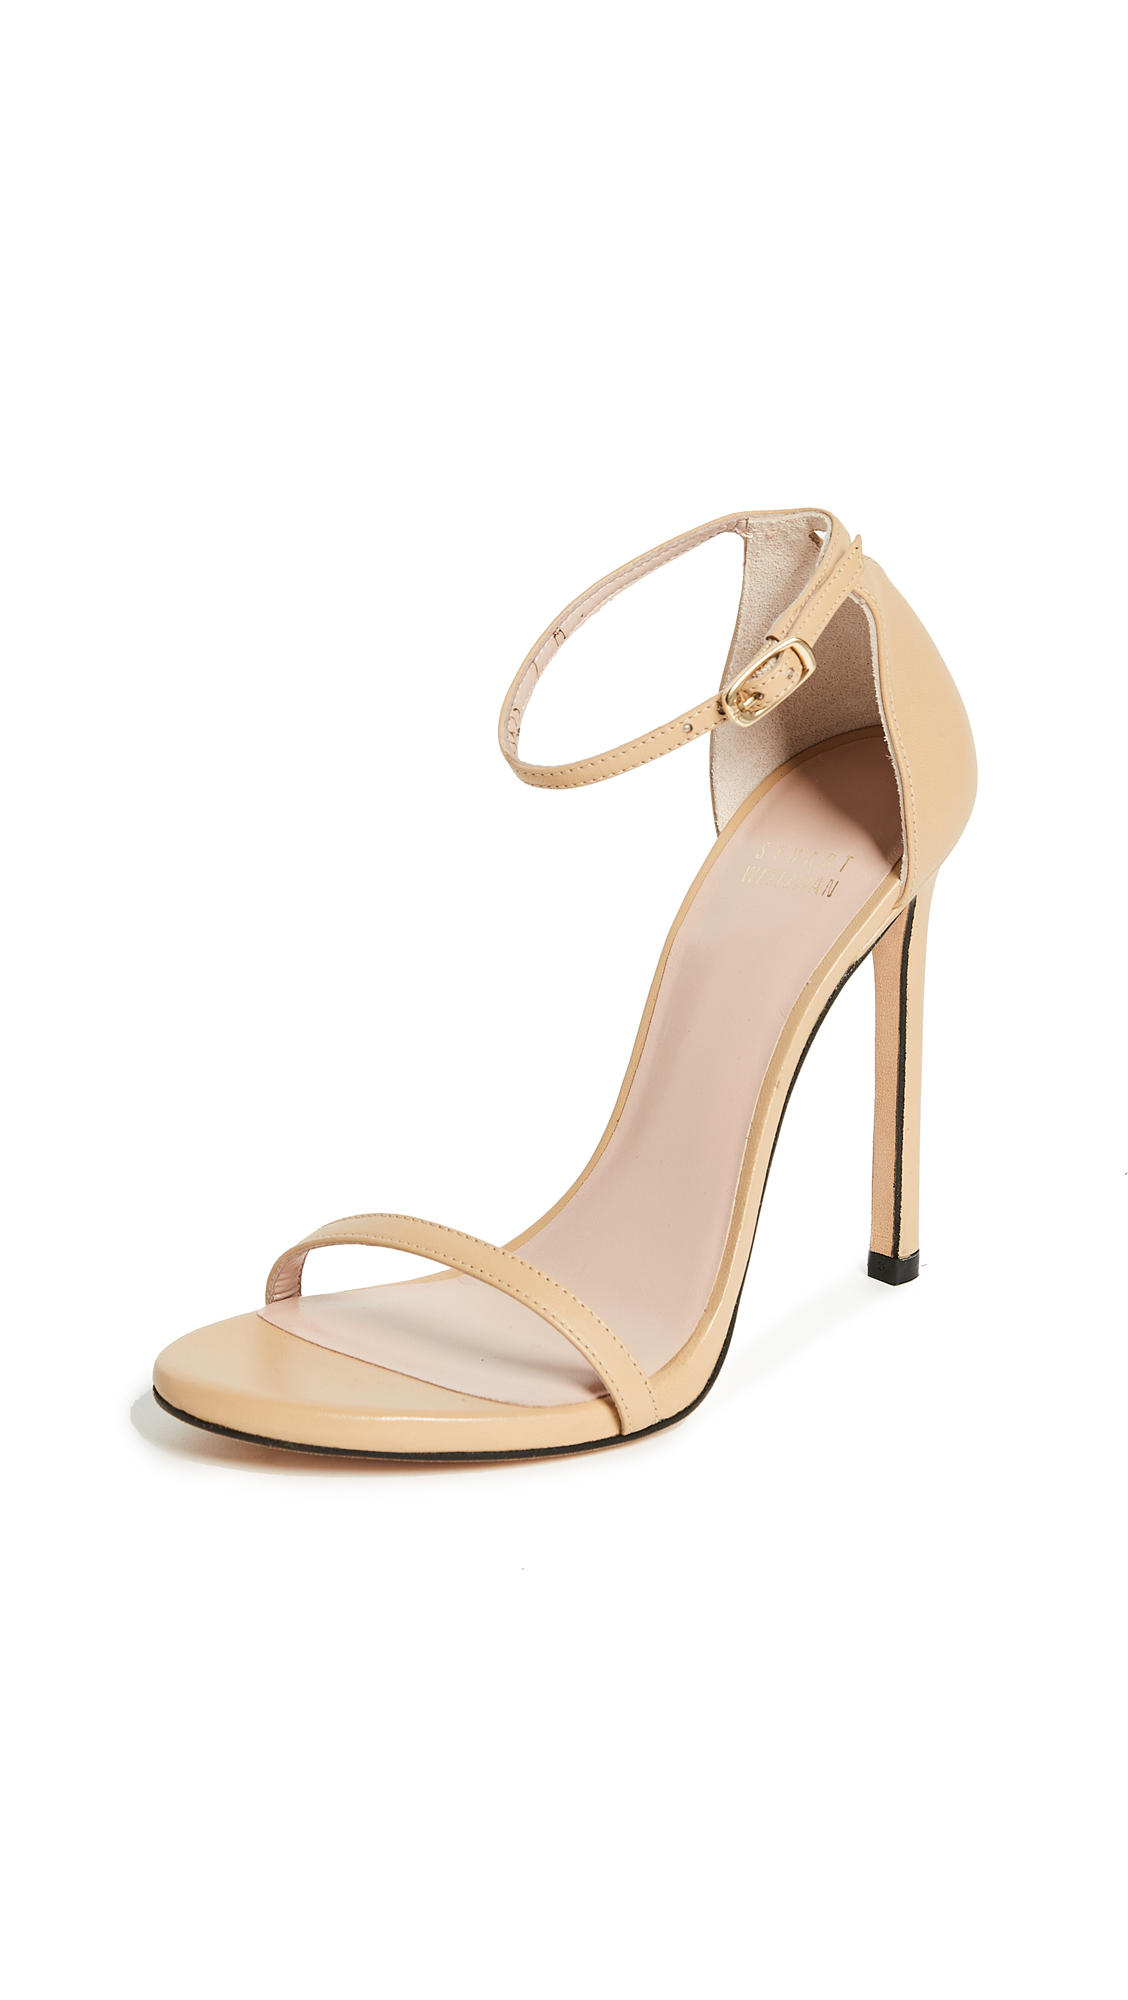 Stuart Weitzman Nudist 110mm Sandals - Light Camel